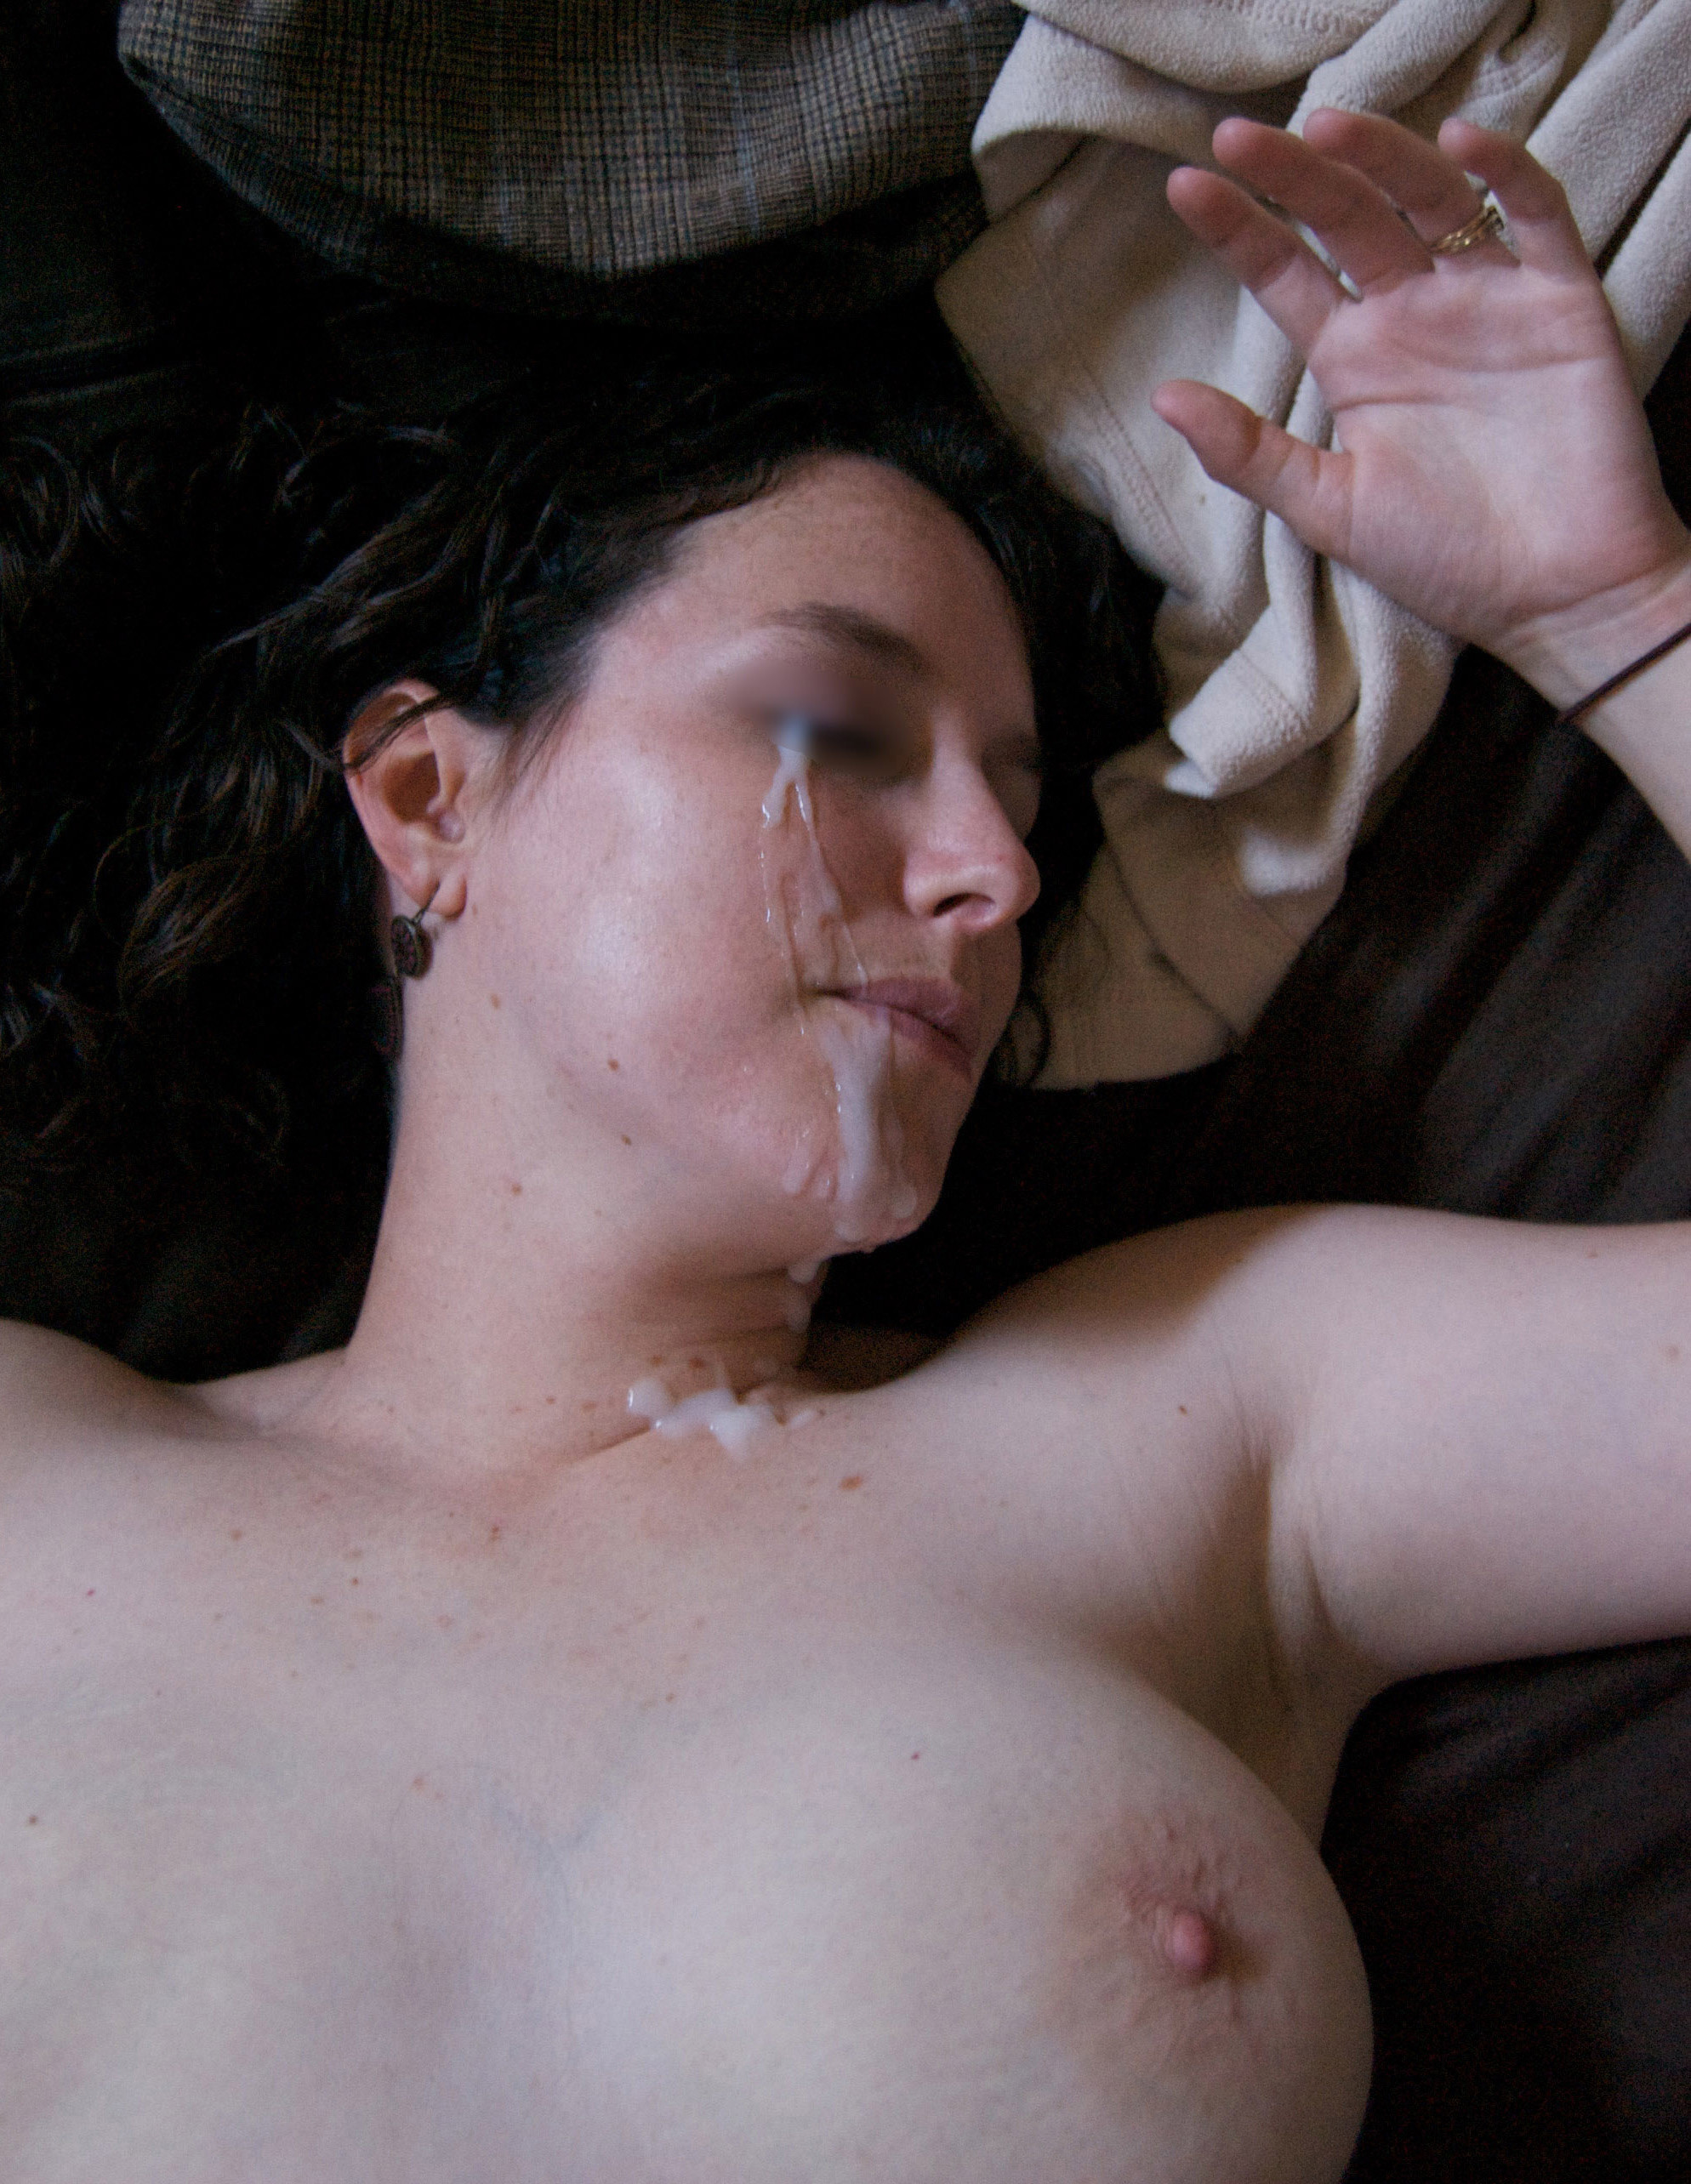 milf-sleeping-naked-girl-with-cum-on-her-face